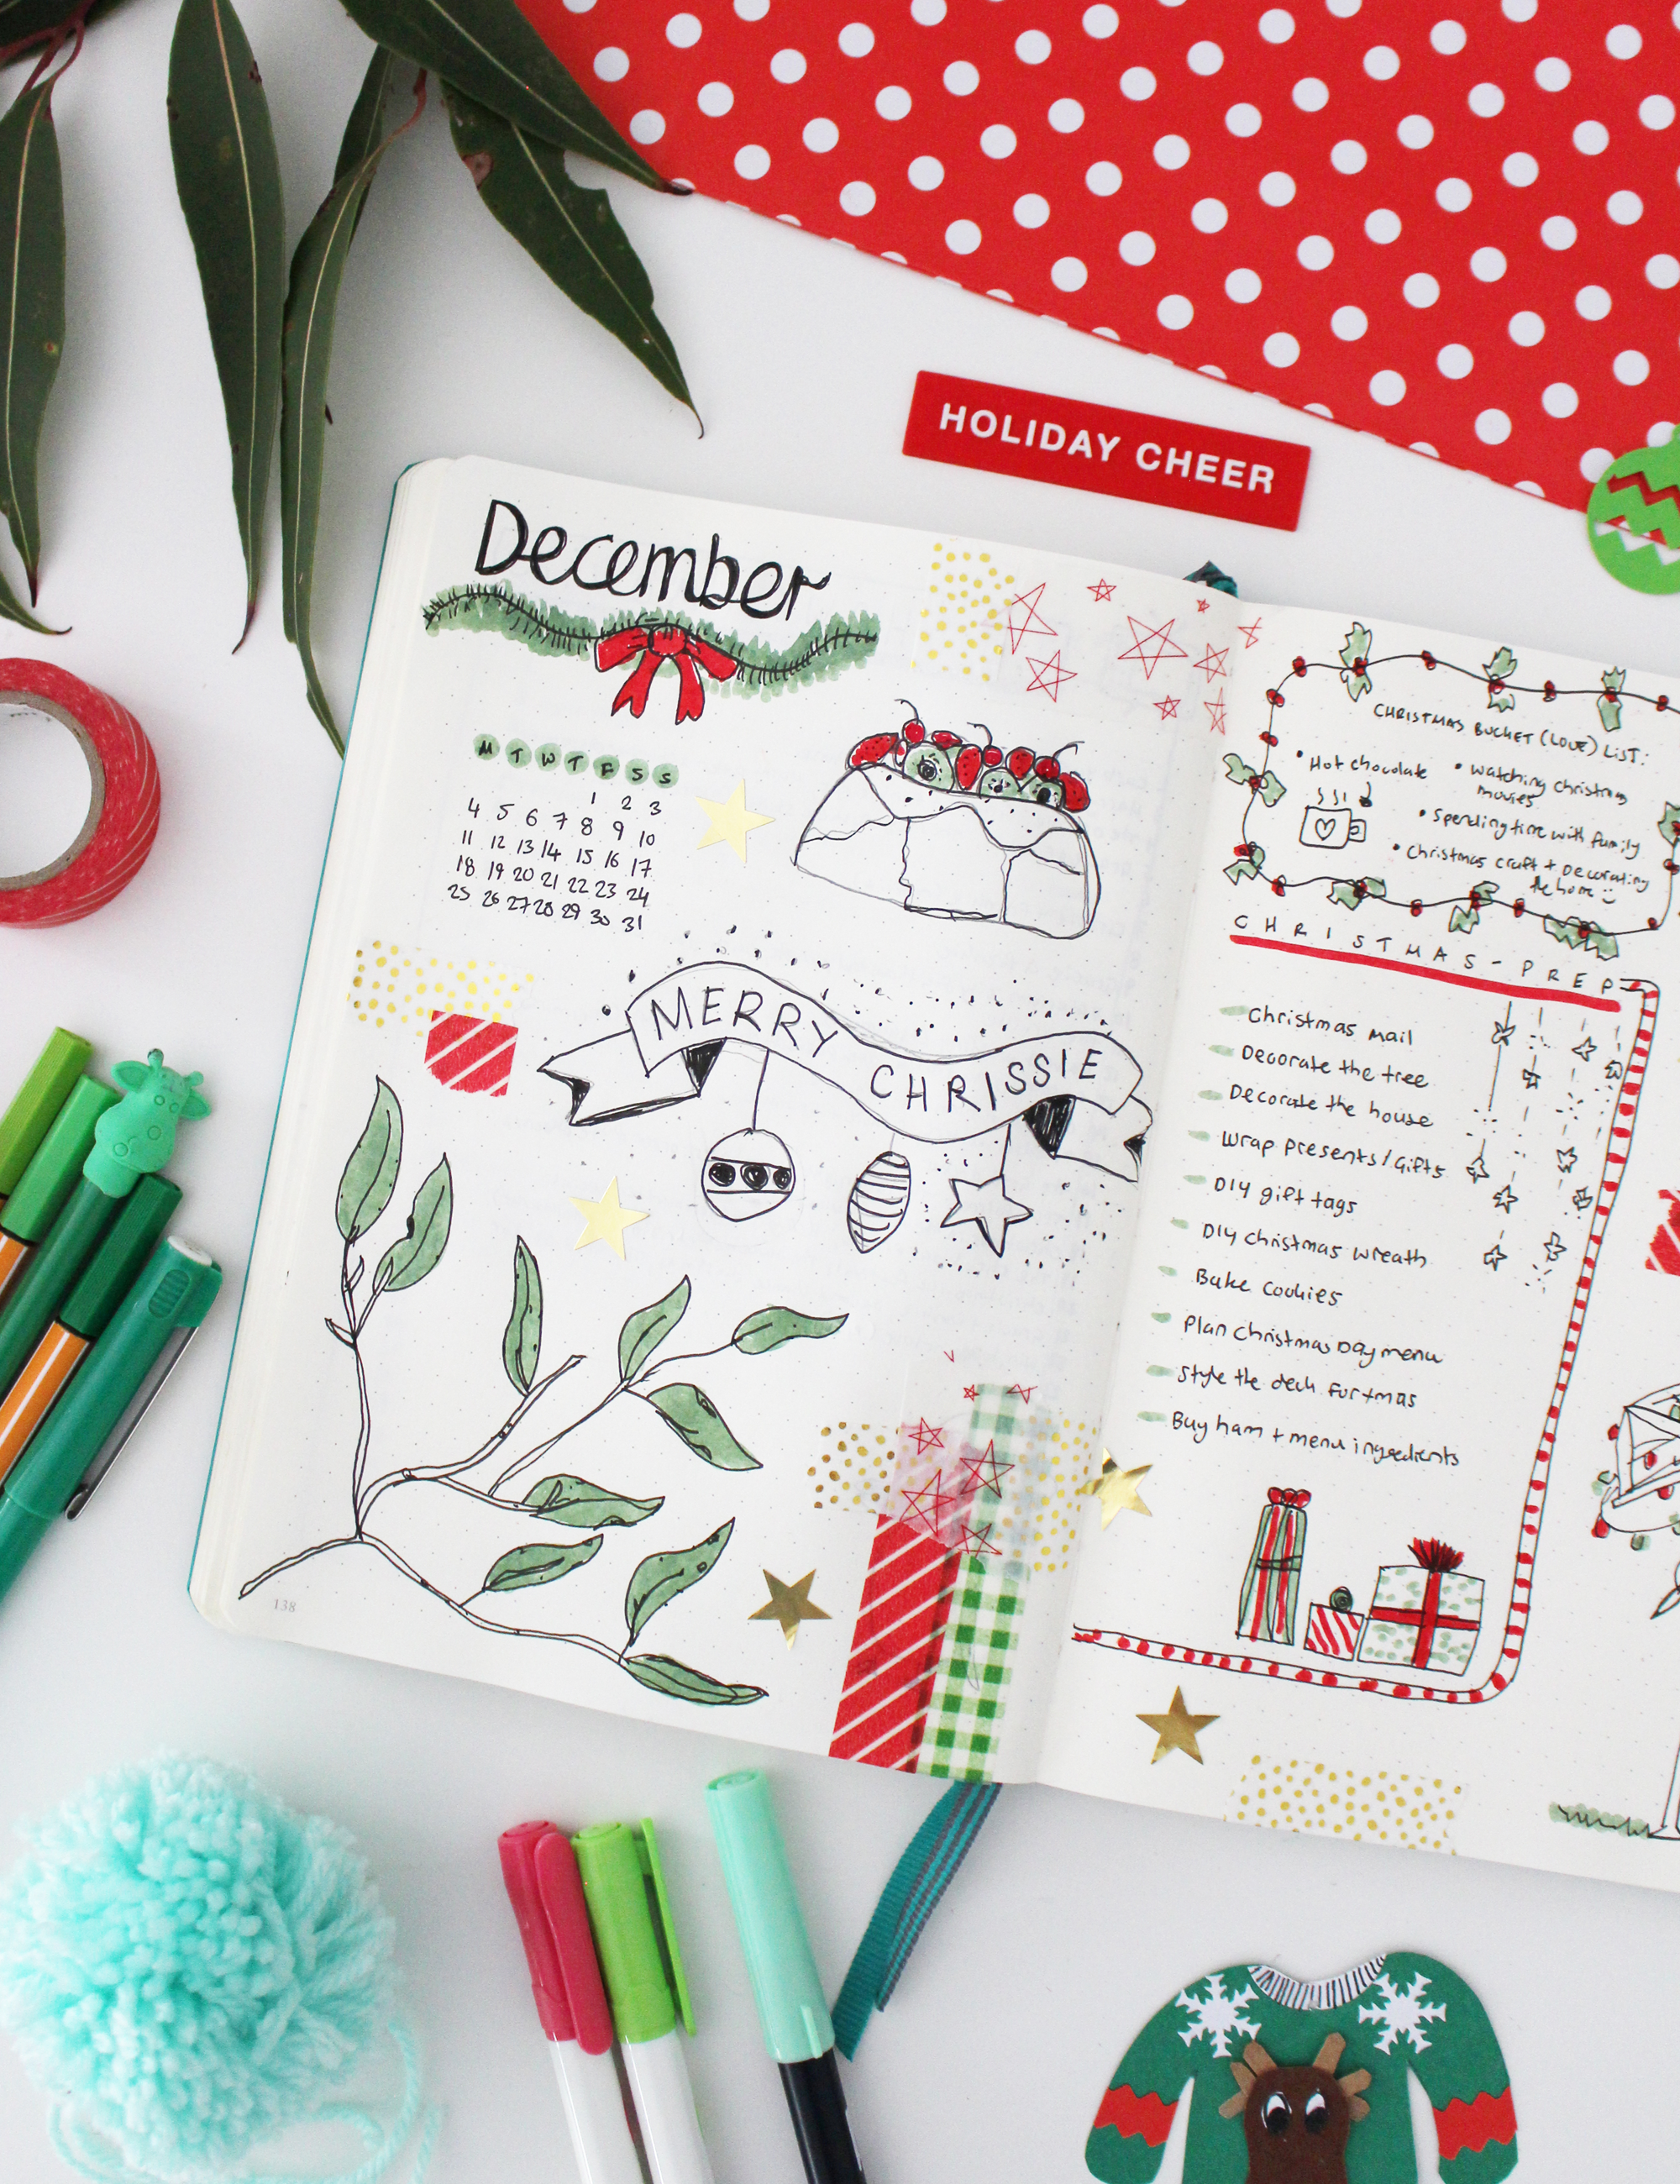 8 Creative Ways To Plan For Christmas